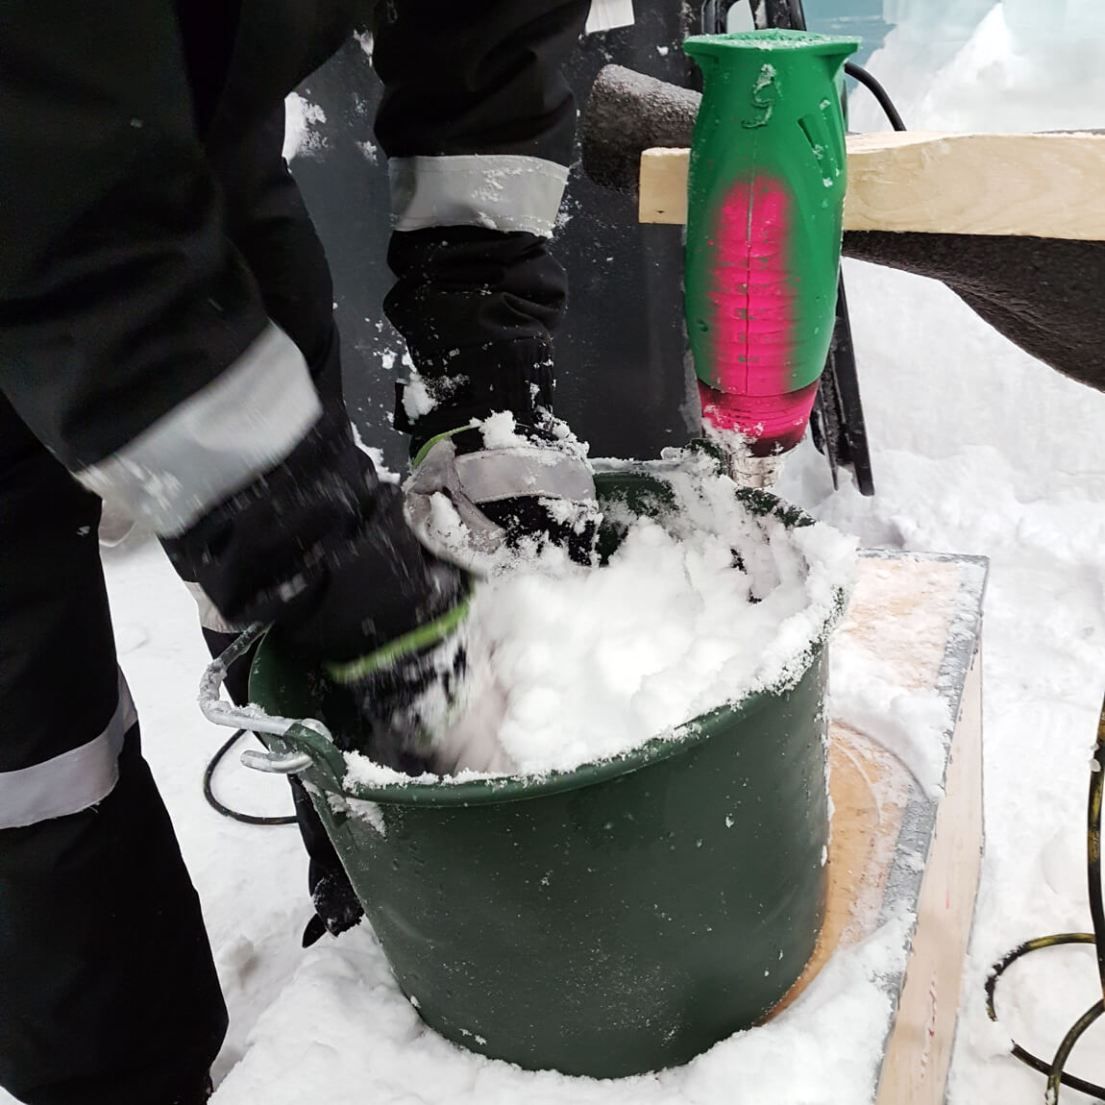 Snice is snow and ice, used as a sticky glue in the construction of the snow and ice hotel. Here are Hugh and Howard Miller hard at work on ICEHOTEL Sweden 2018.